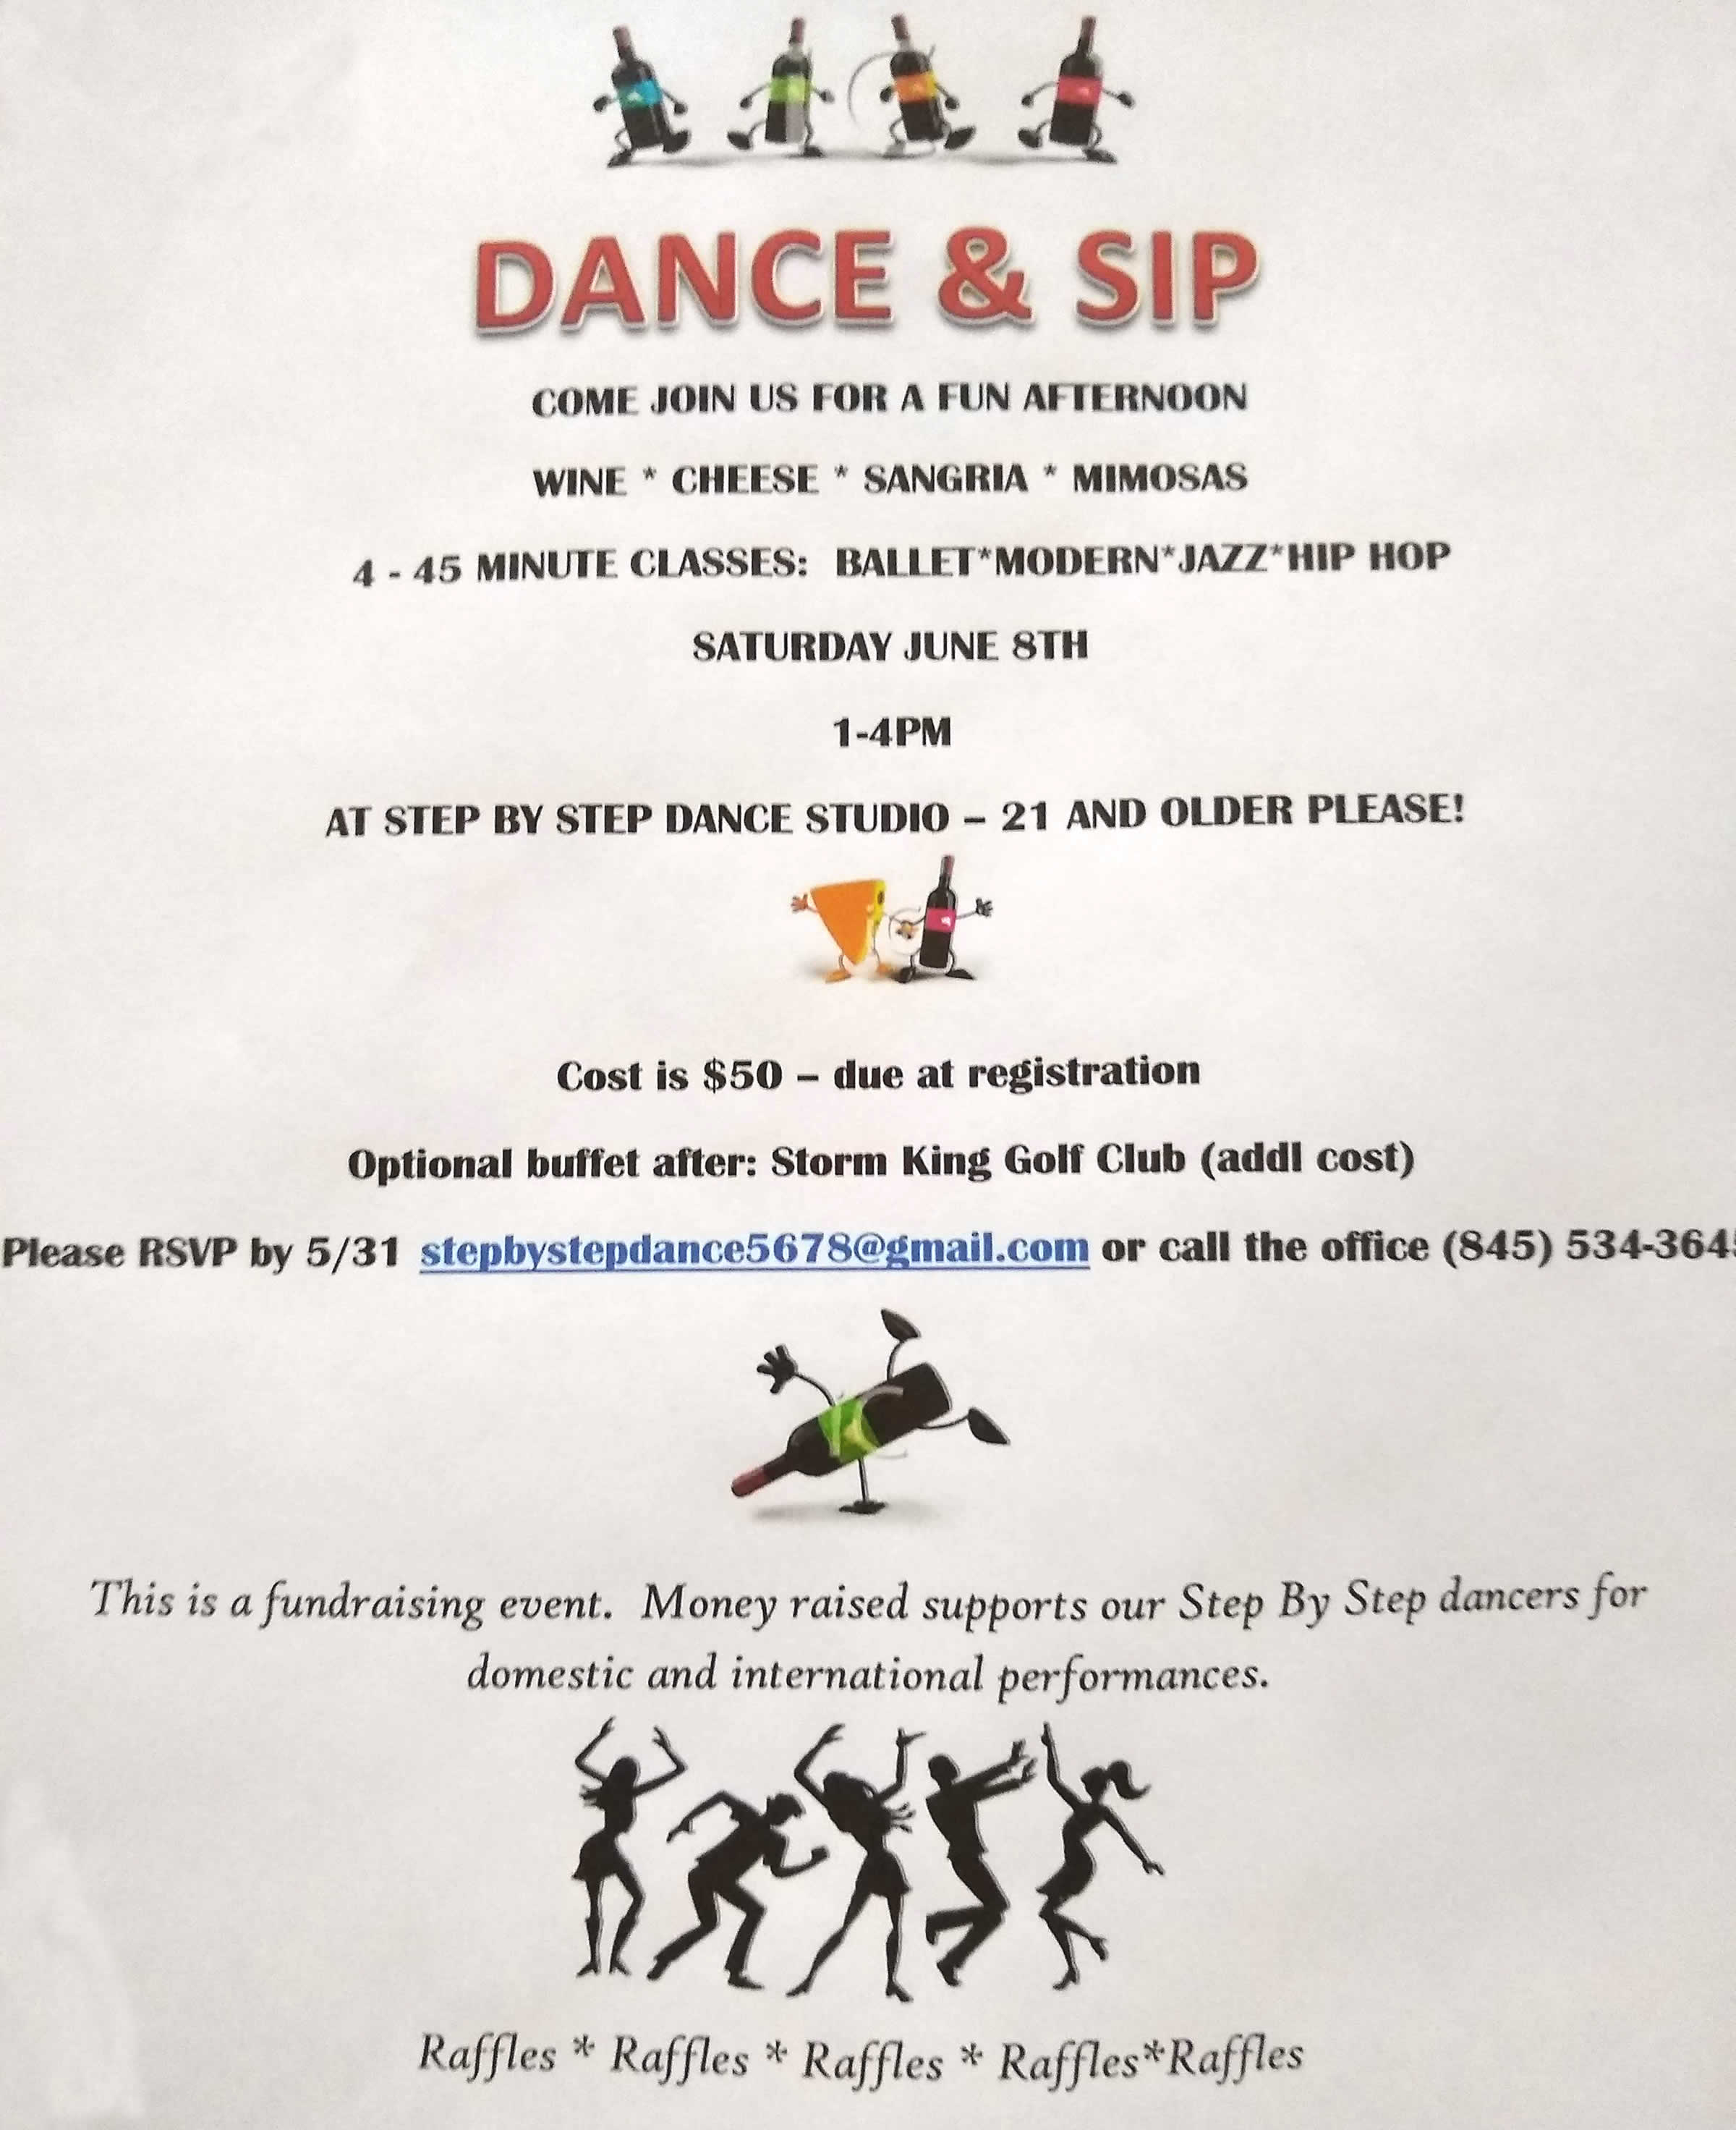 Dance and Sip June 8th